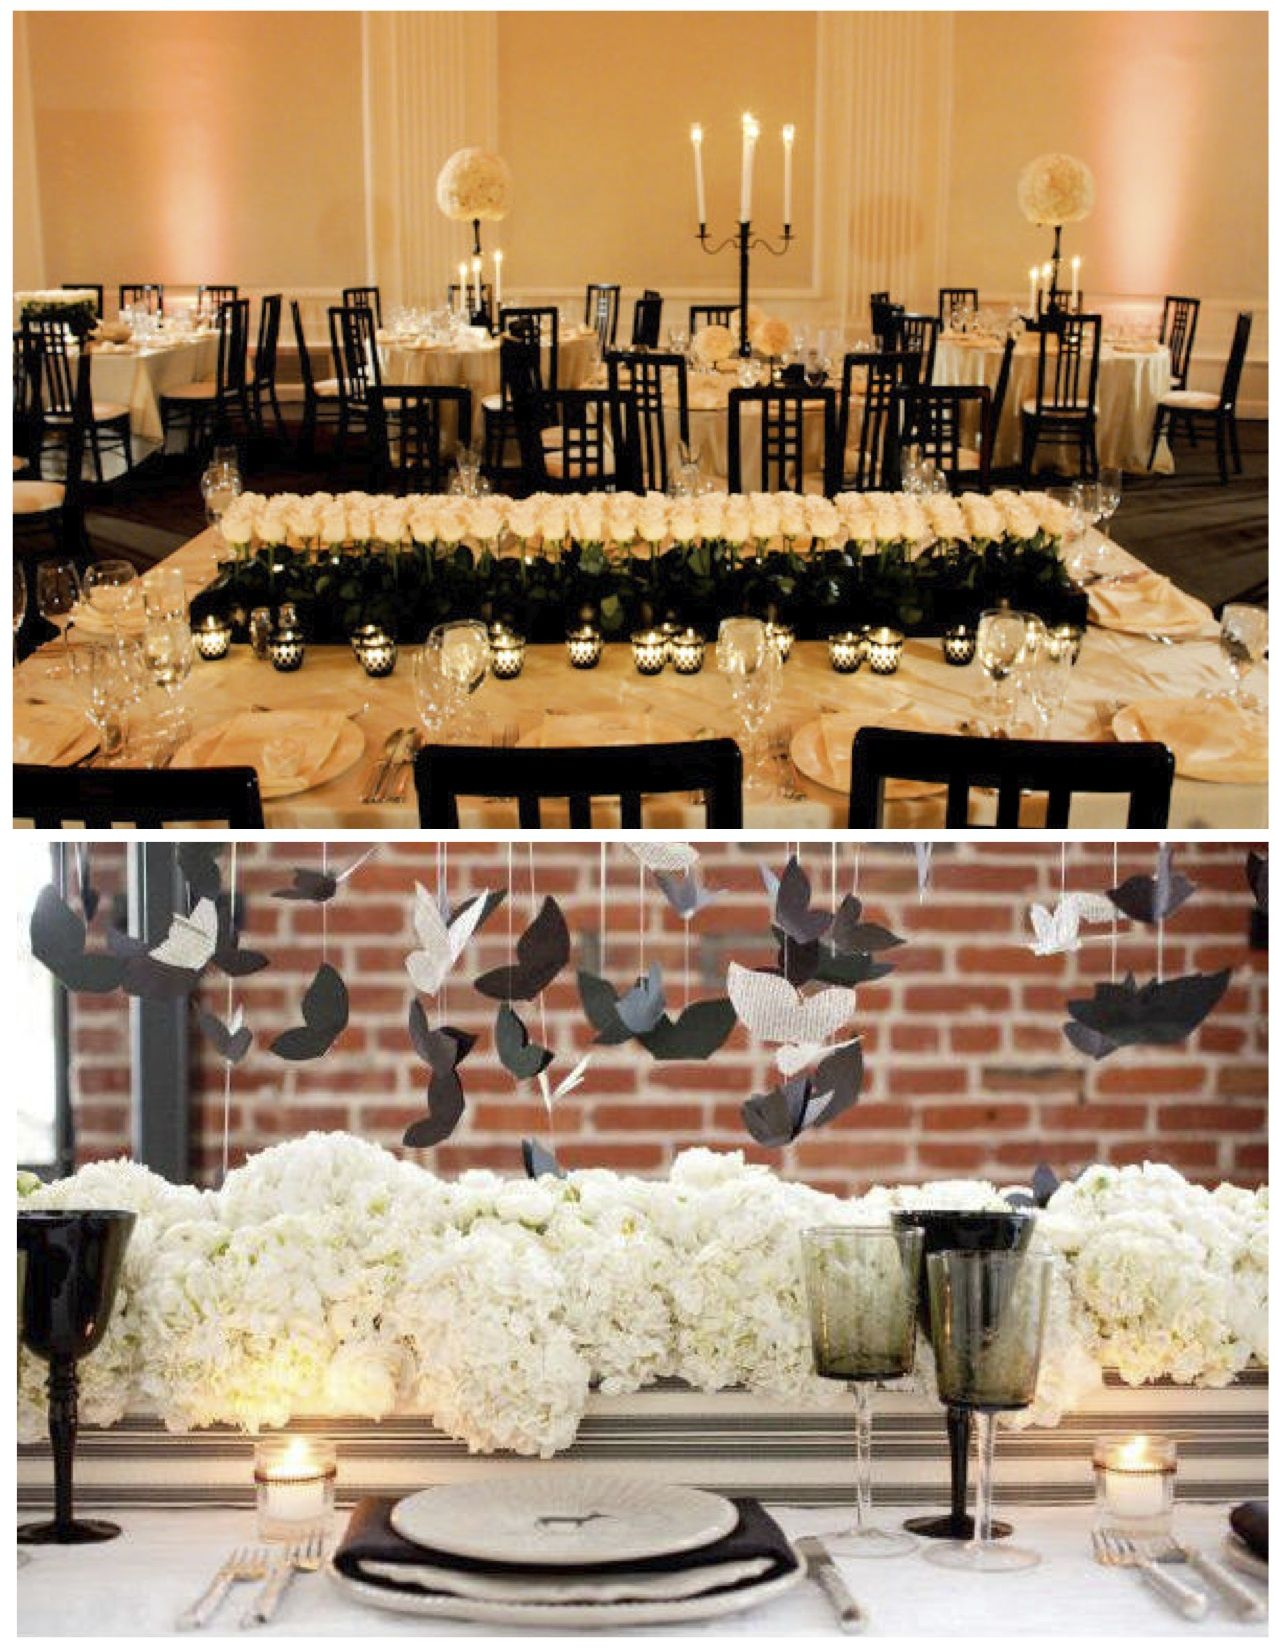 Black and white tablescape party ideas pinterest boda for Black and white tablescape ideas